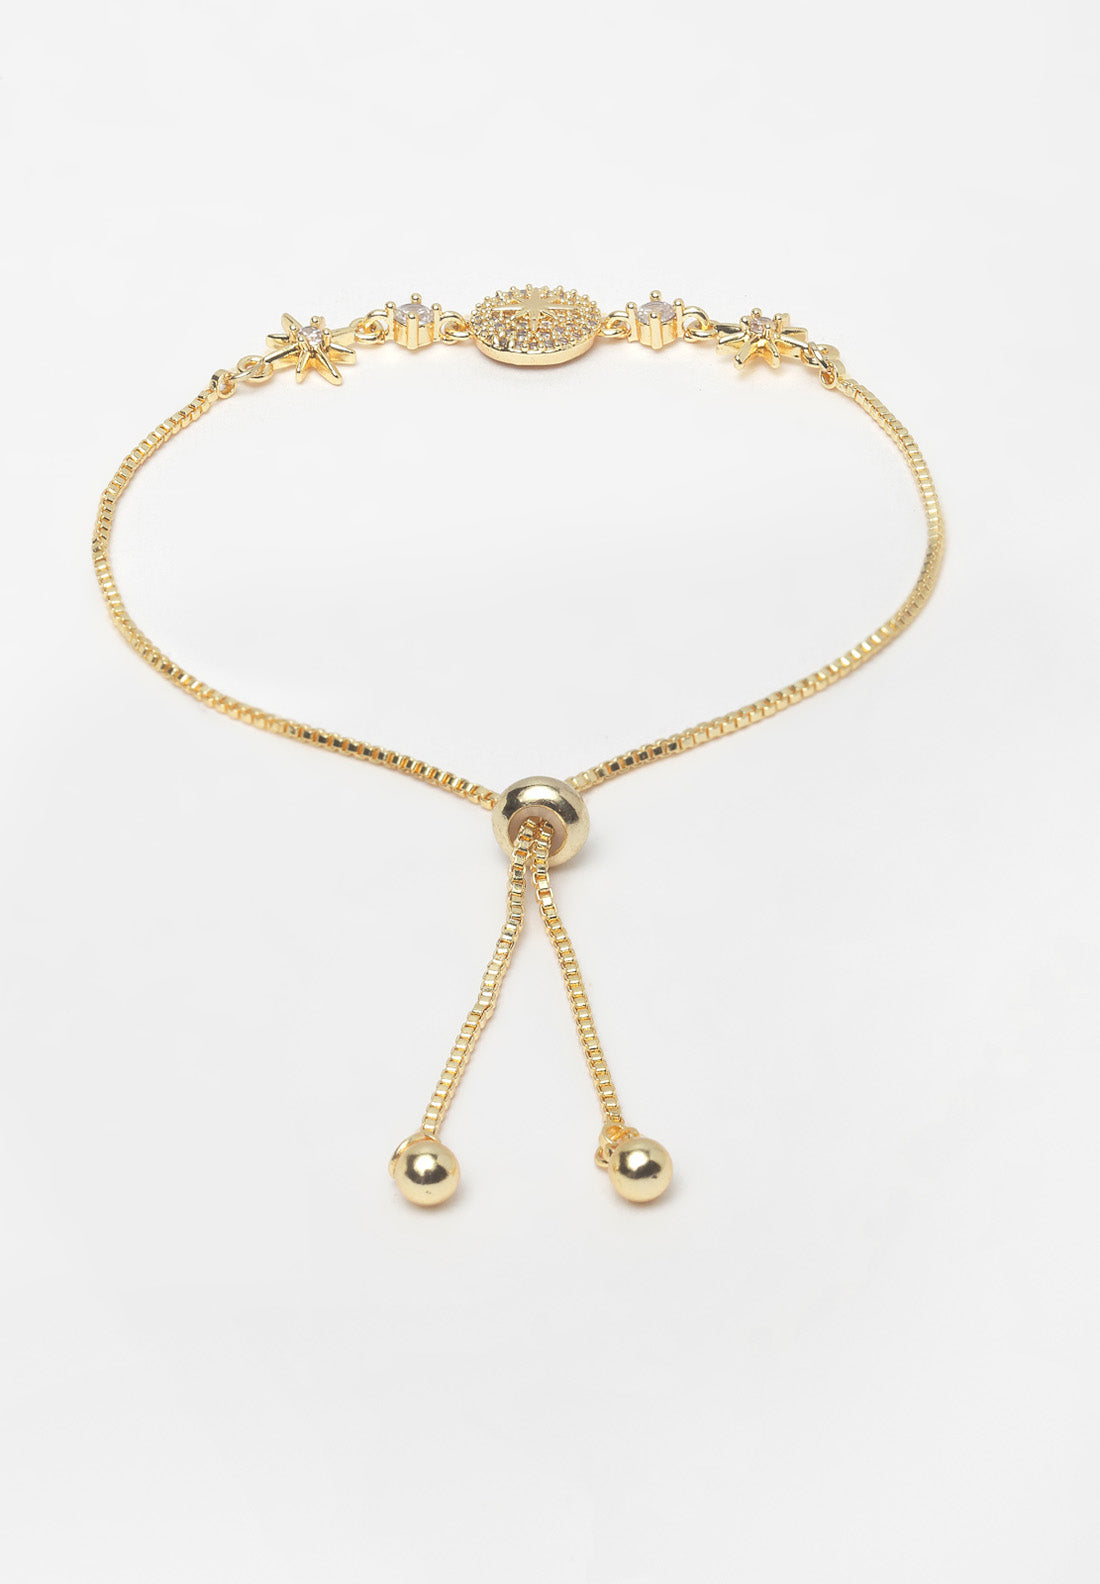 Avant-Garde Paris Gold Plated Crystal Bracelet